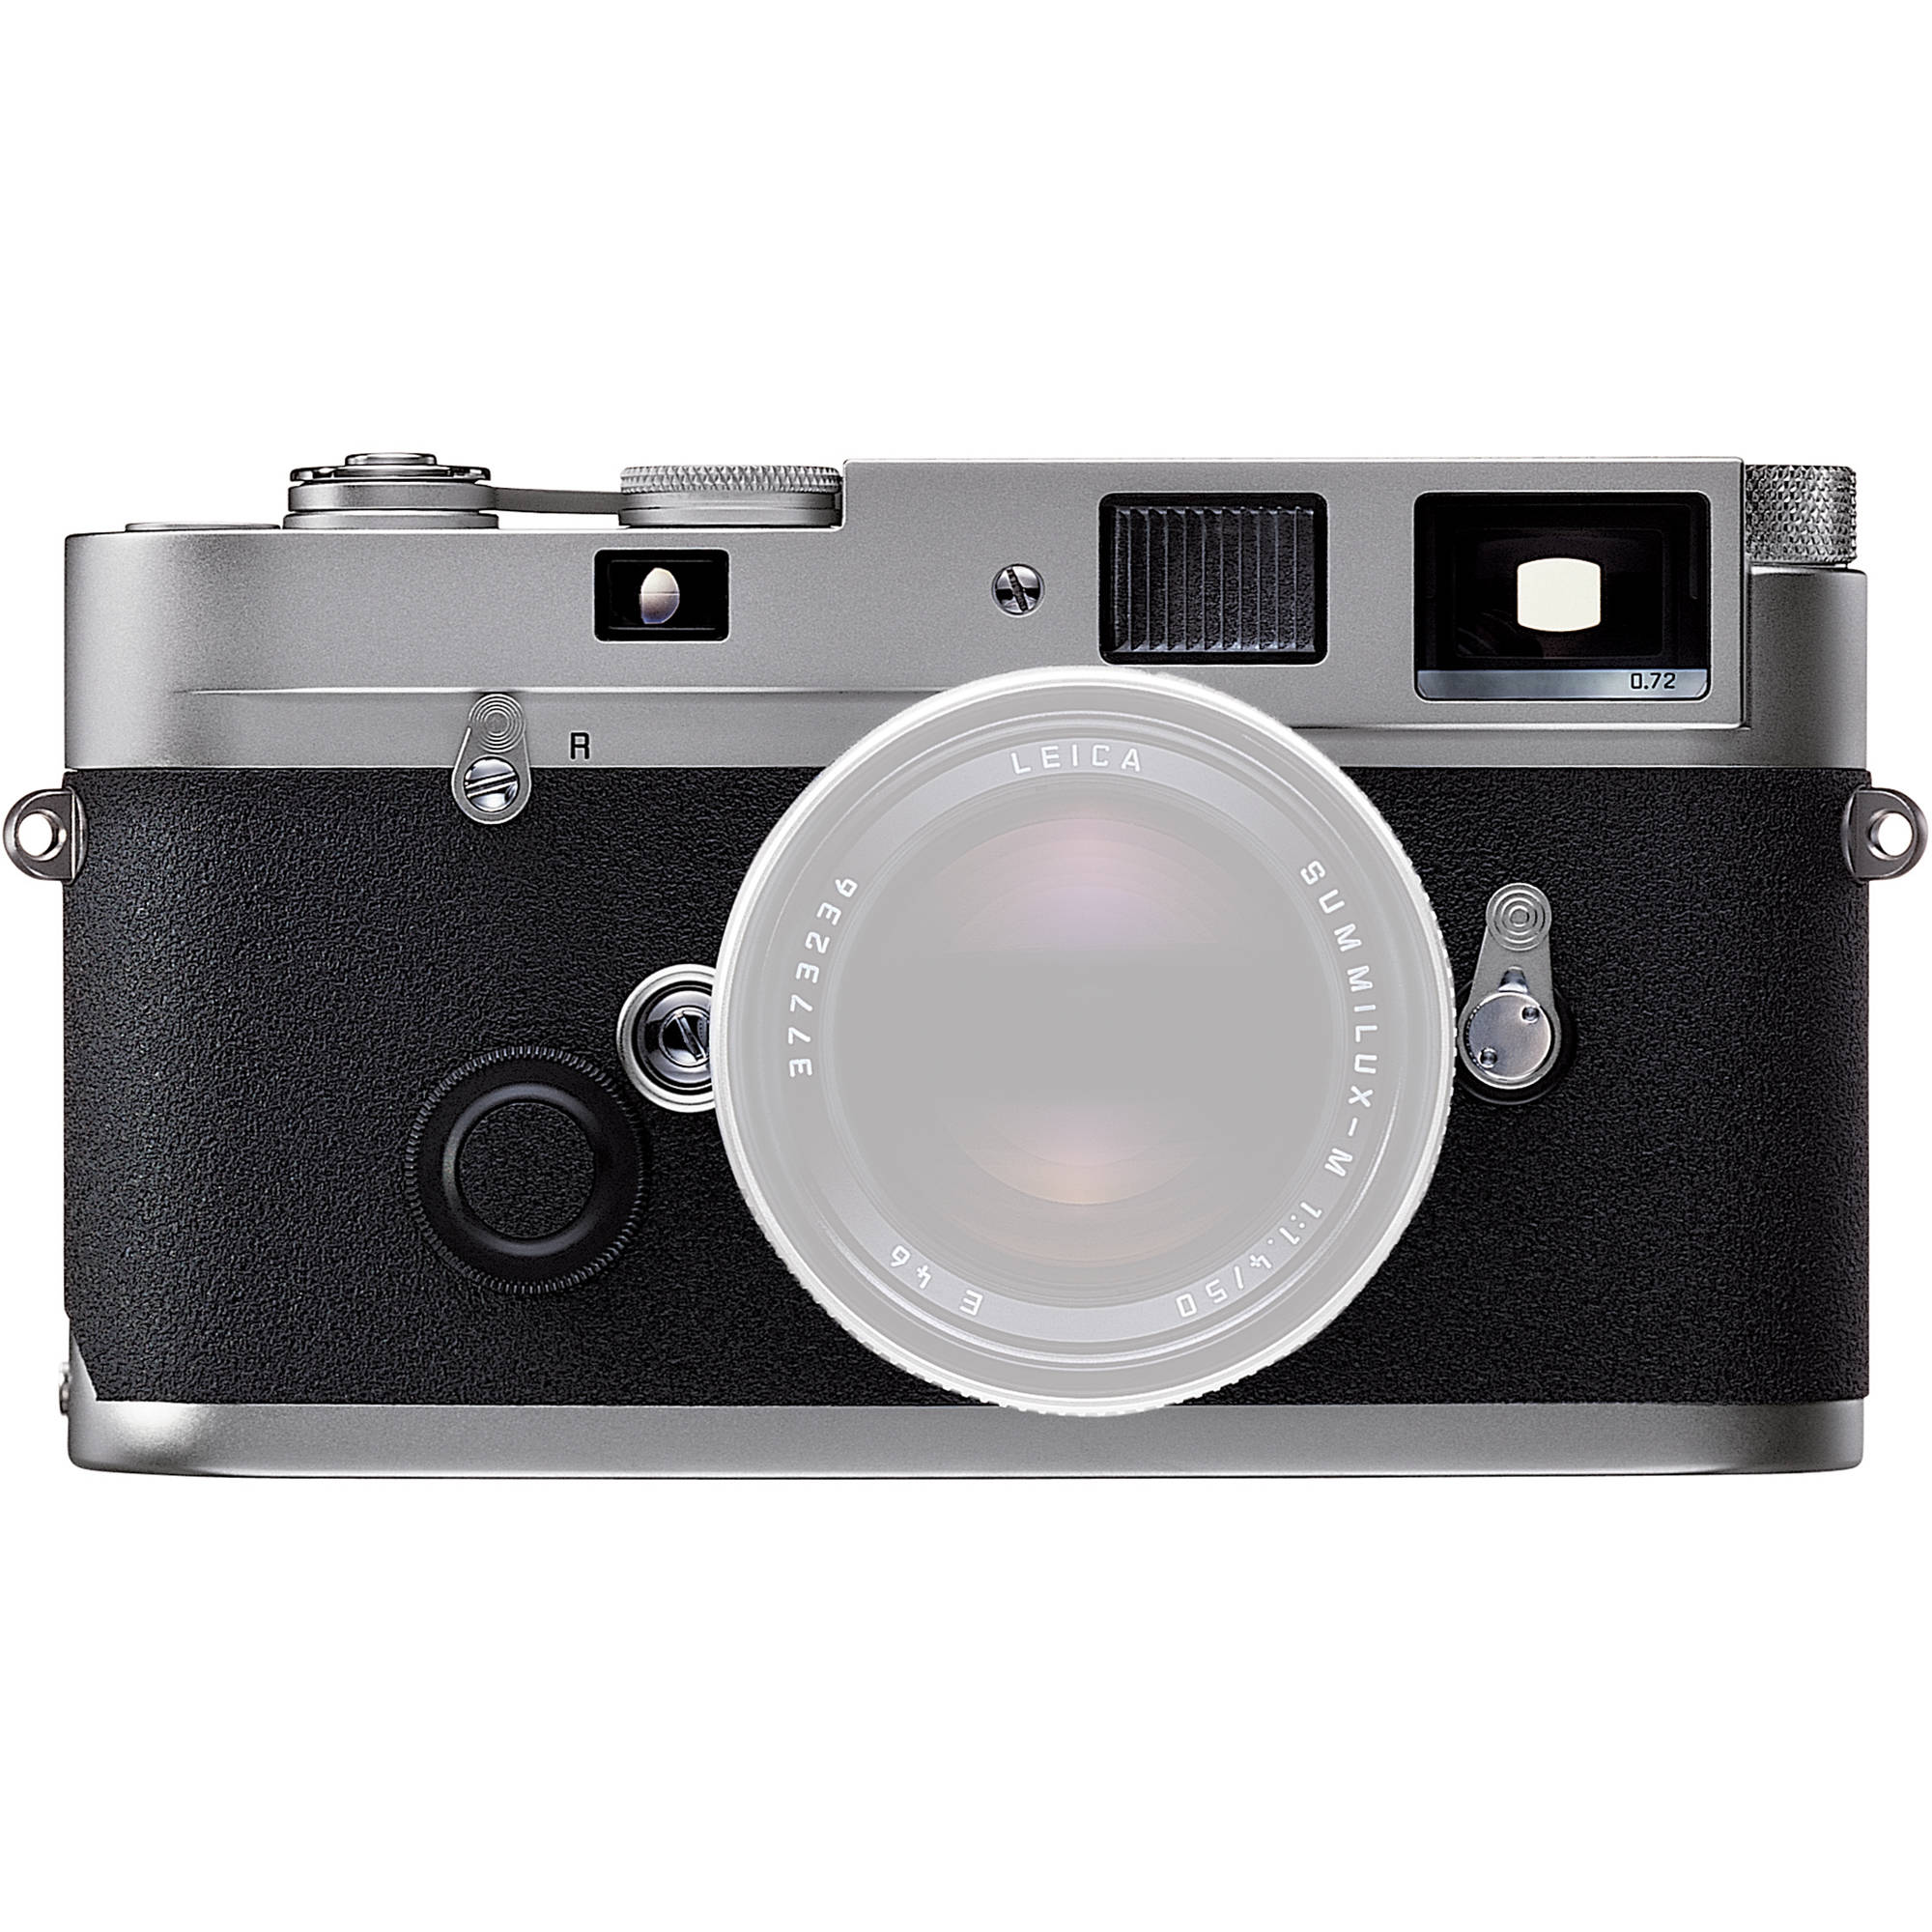 Leica mp lens not included